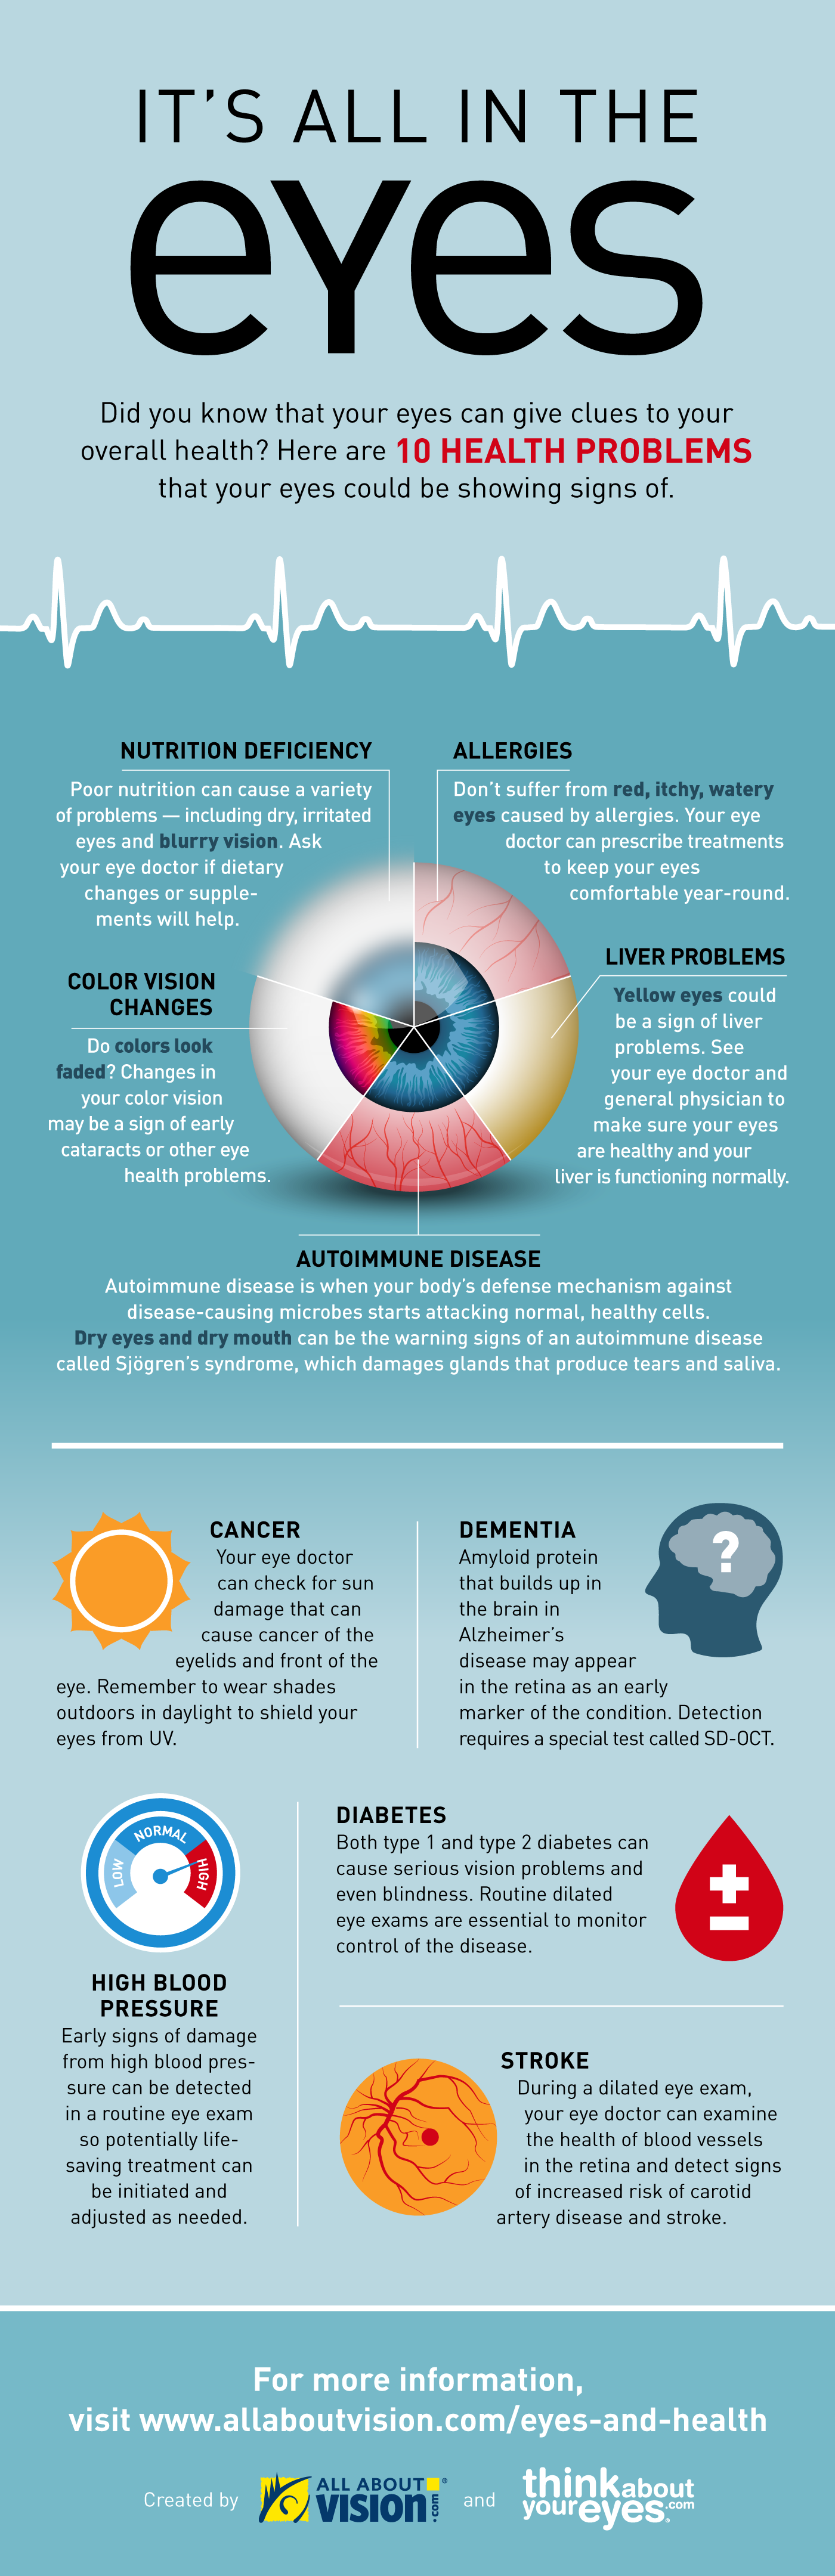 Infographic: 10 Health Problems Your Eyes Could Be Showing